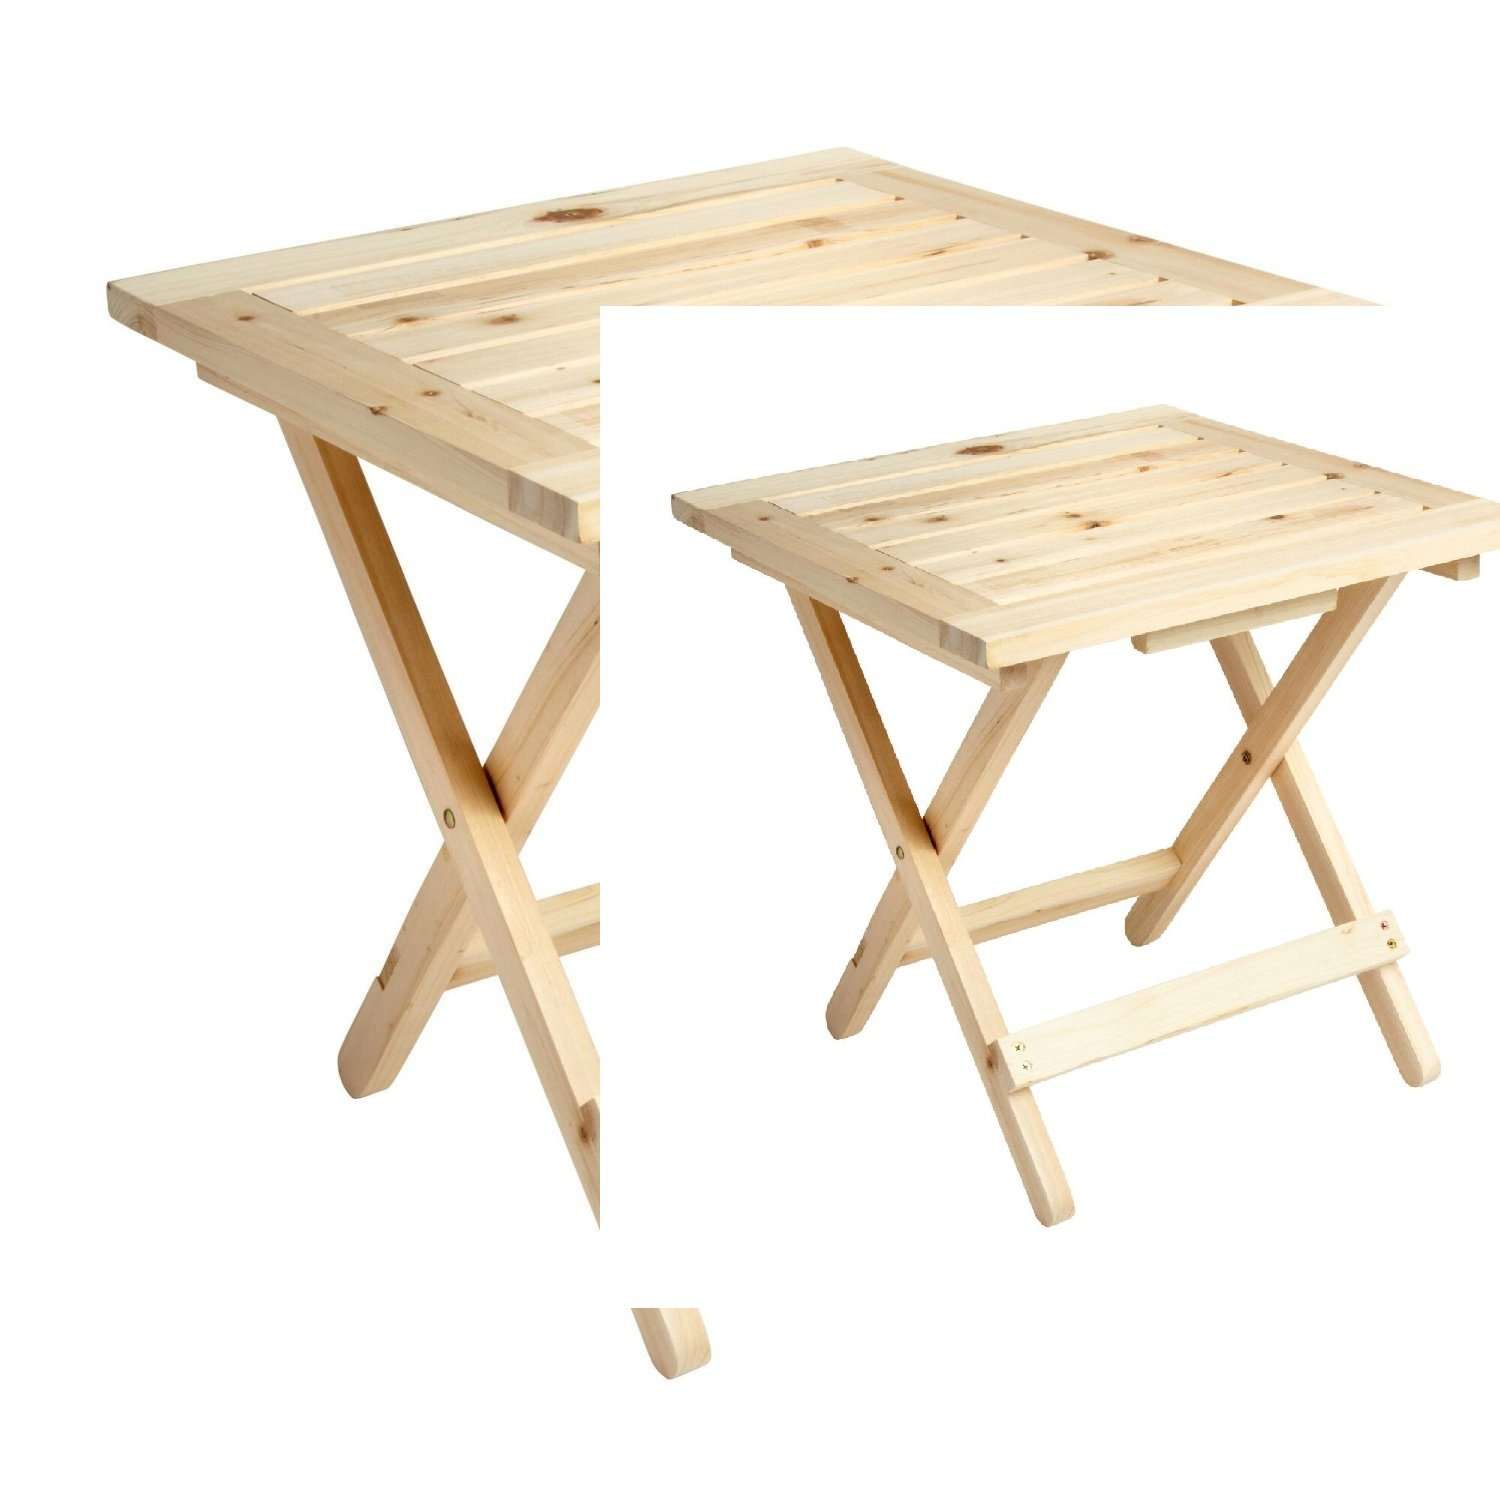 """Solid Cedar Adirondack Style Side Folding Table (18"""" x 18"""" x19"""") - *Pack of 2*- Save on Shipping!"""